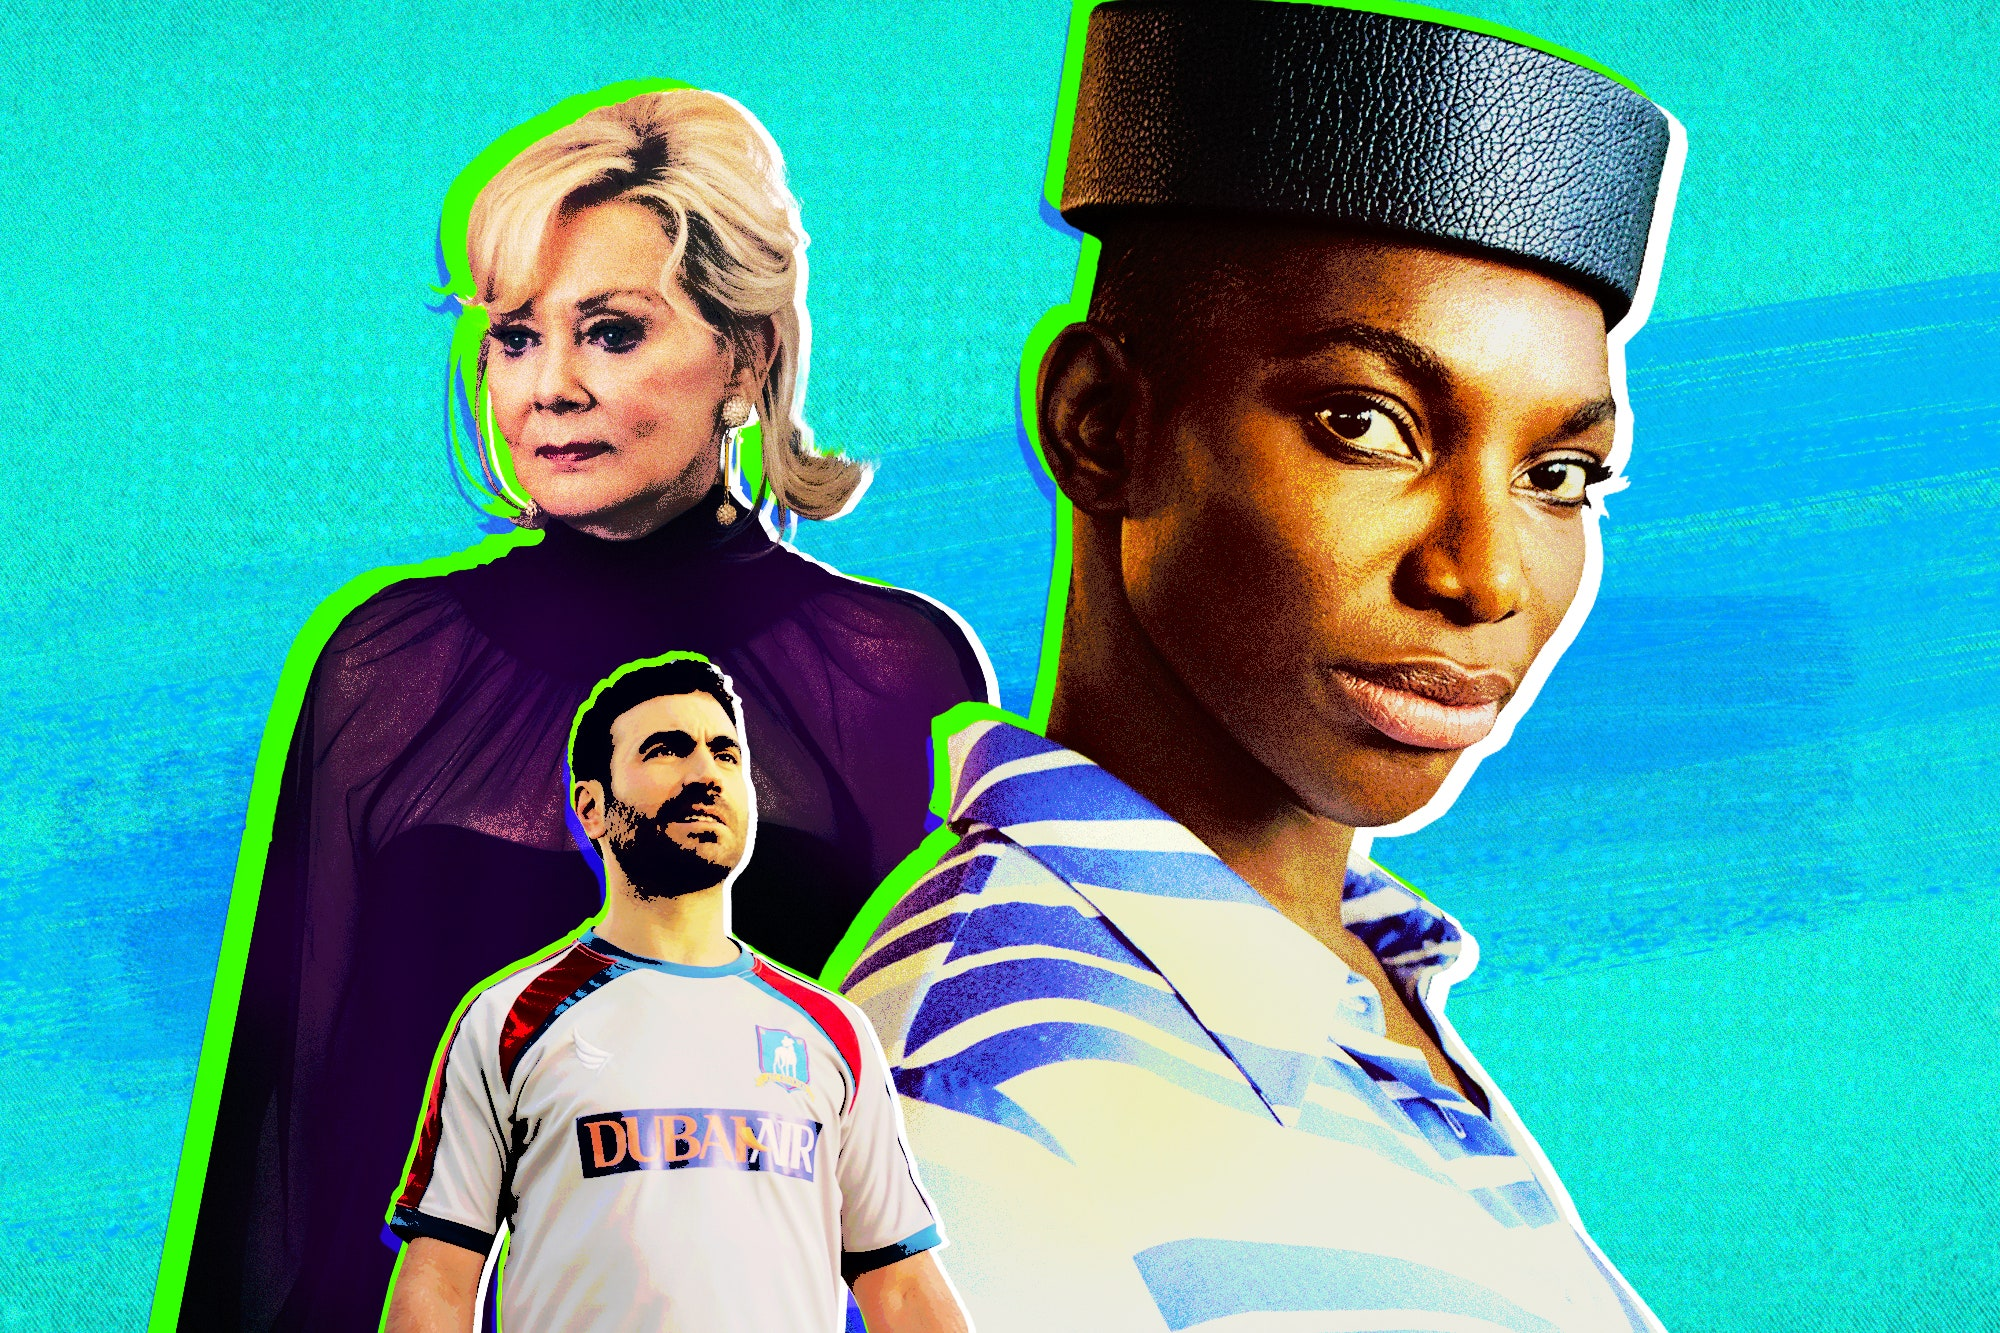 2021 Emmys: Michaela Coel, Jean Smart, and More Reasons to Watch